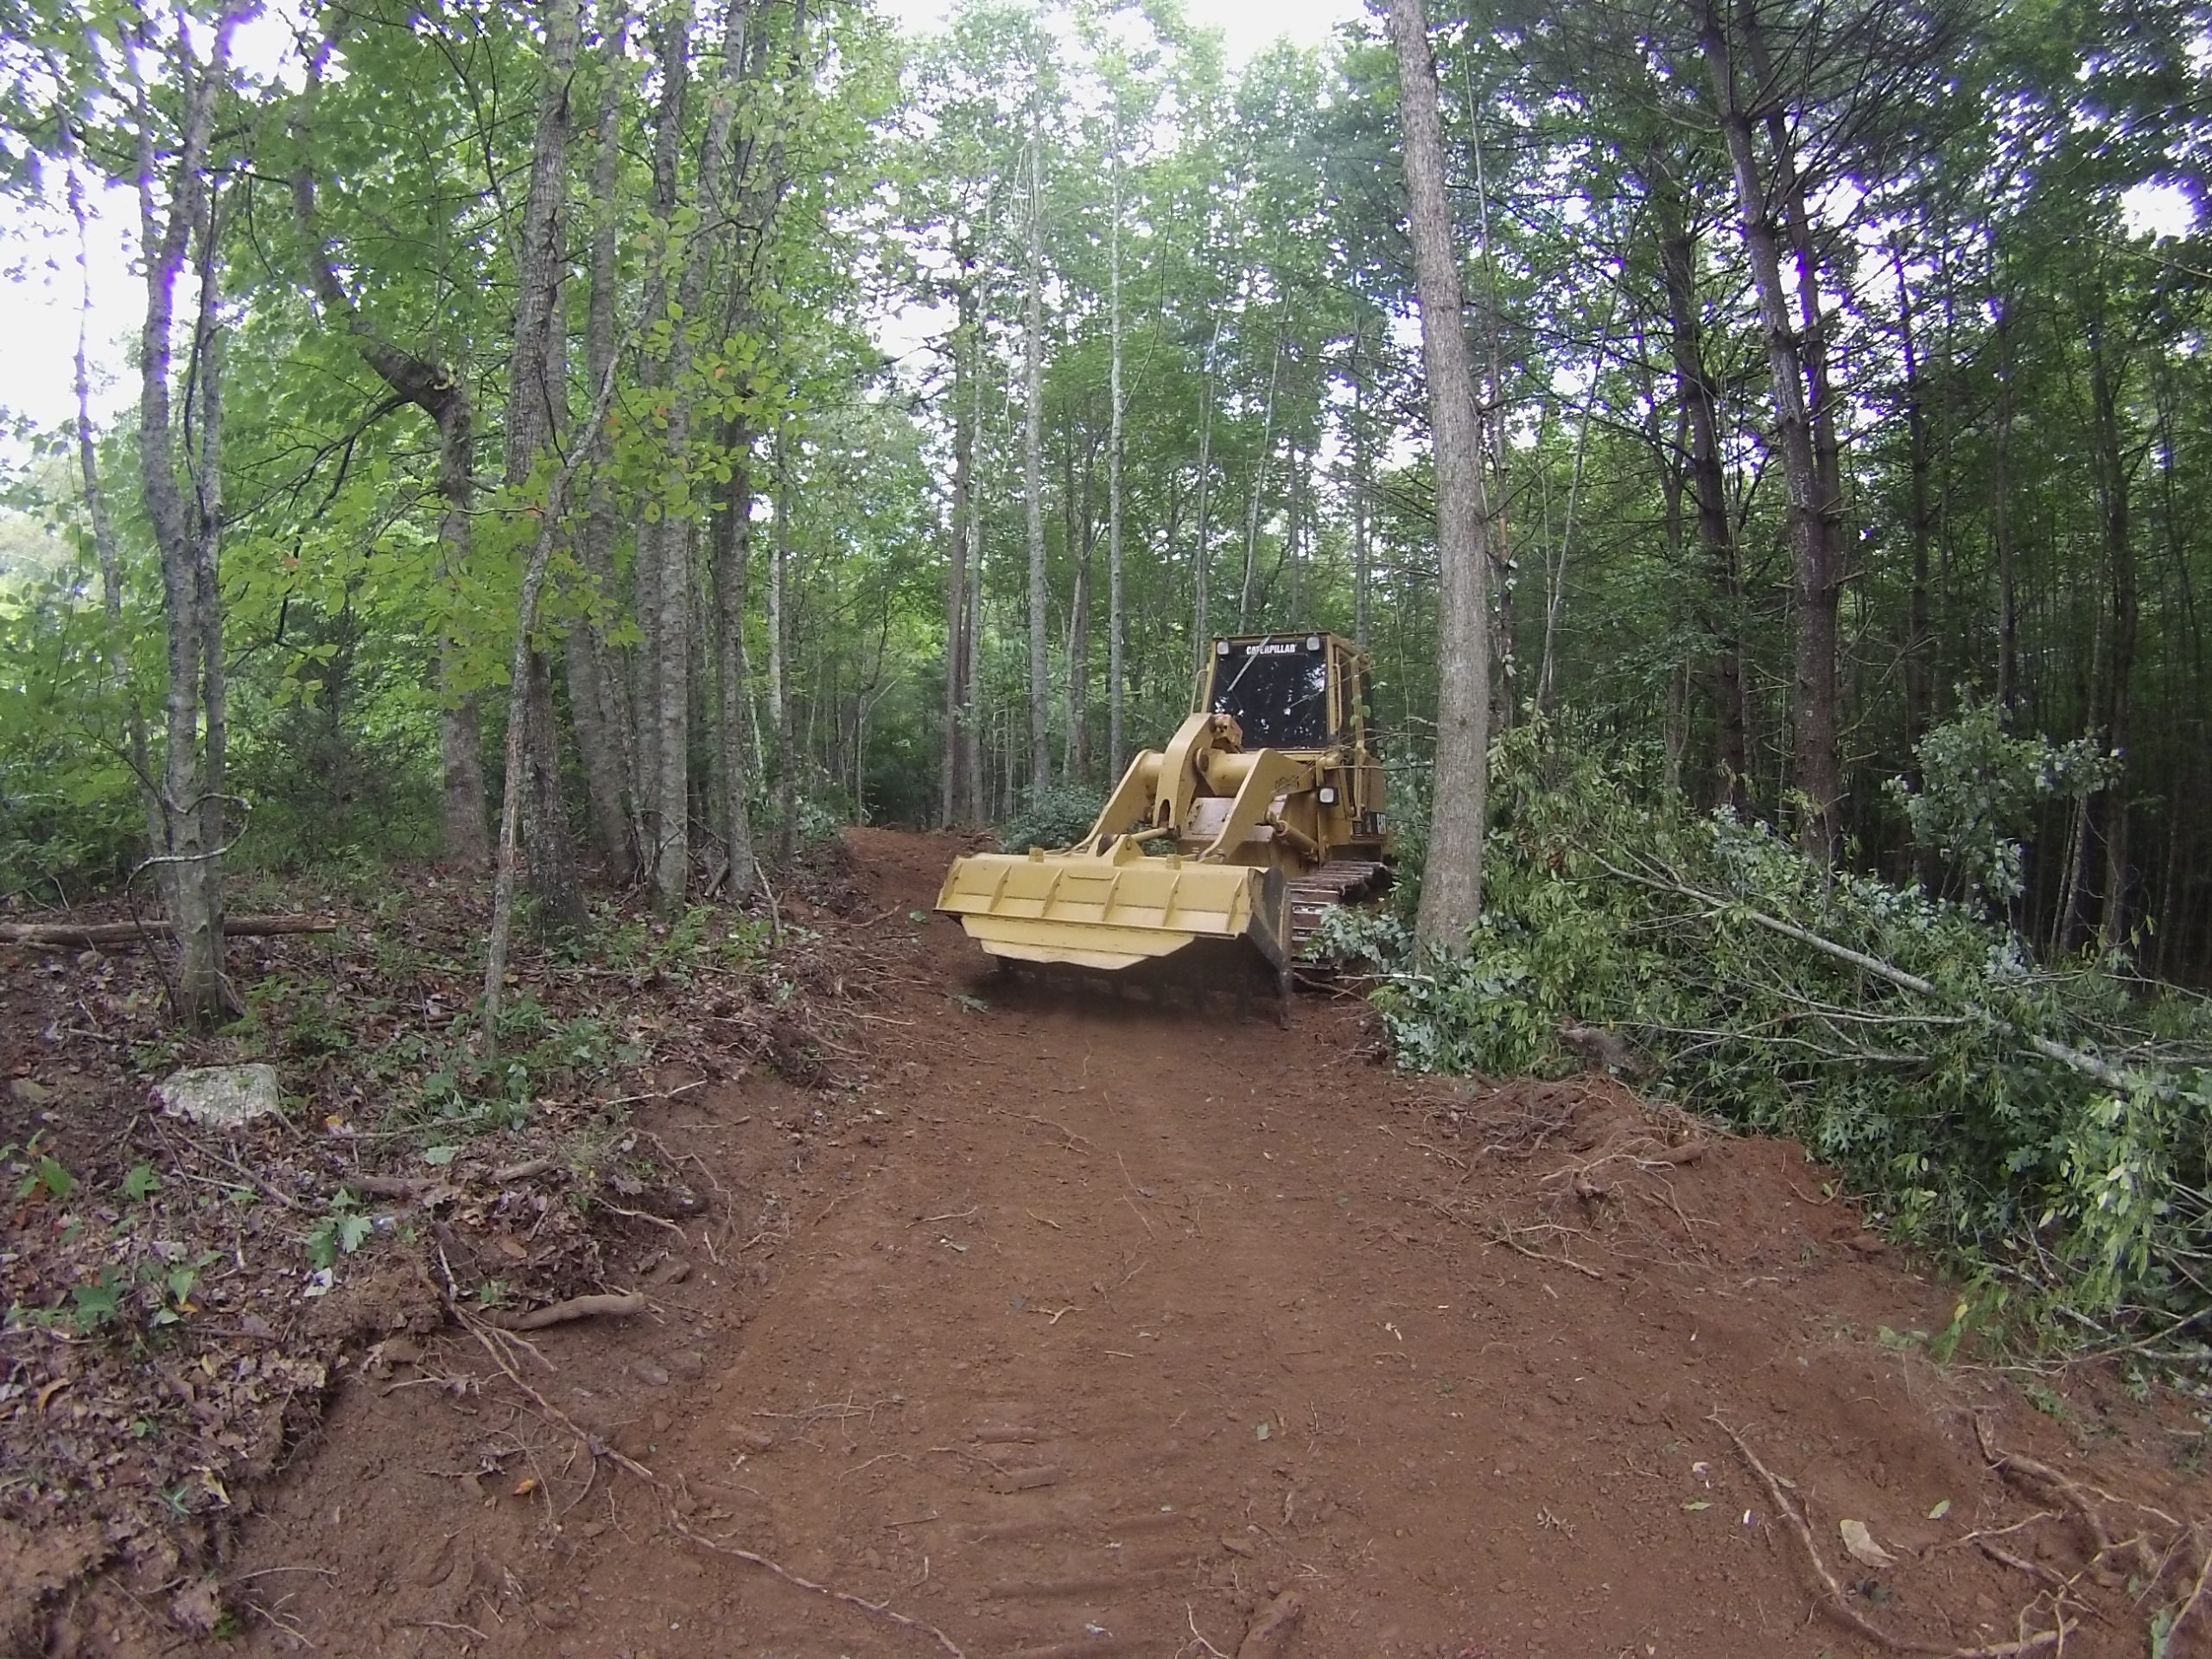 Land clearing, grading and drainage pipe